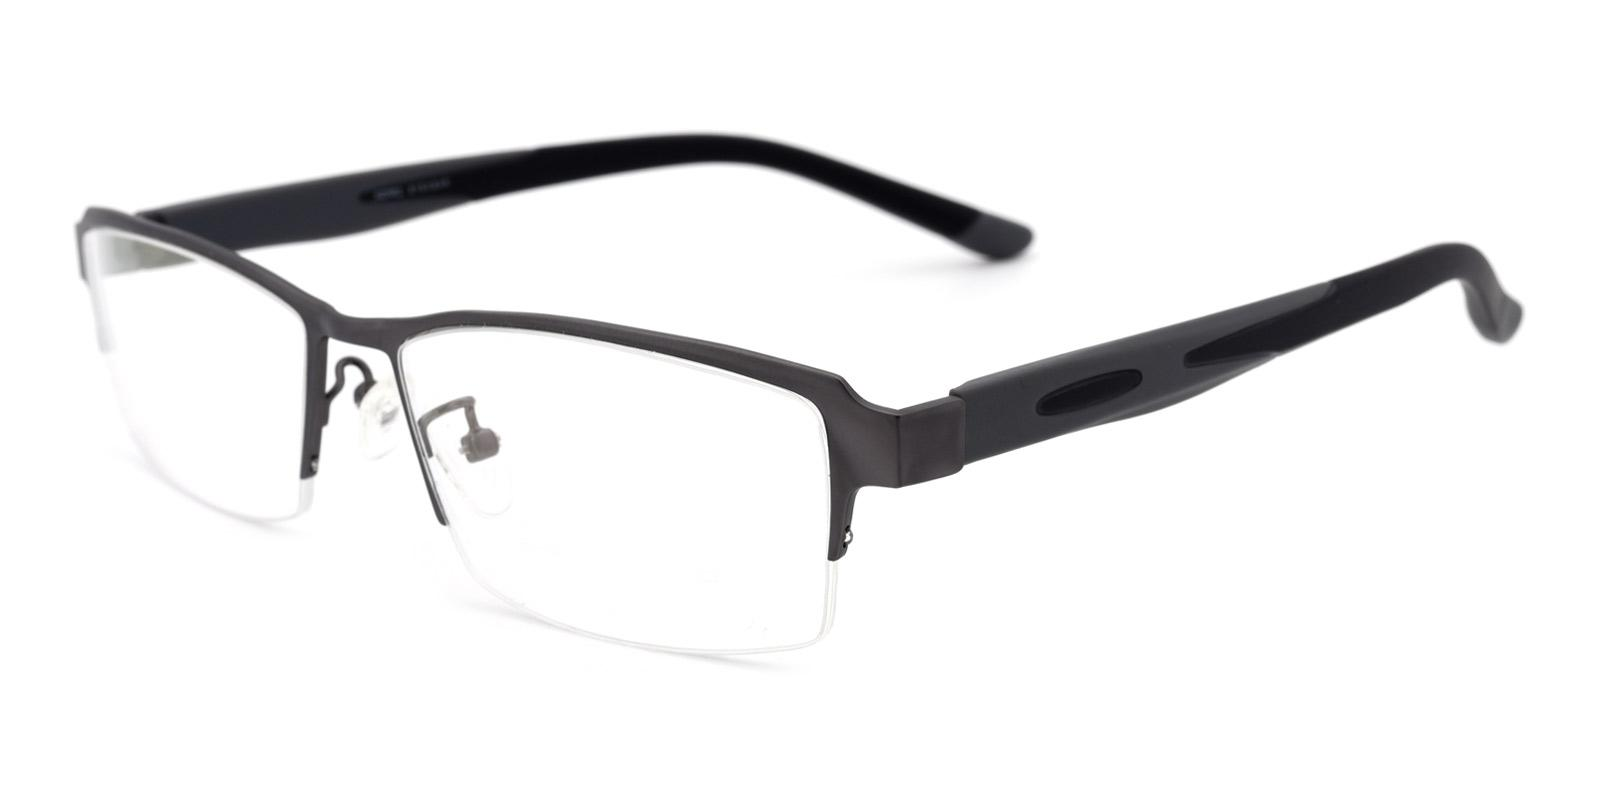 Lewis-Gun-Rectangle-TR-Eyeglasses-additional1